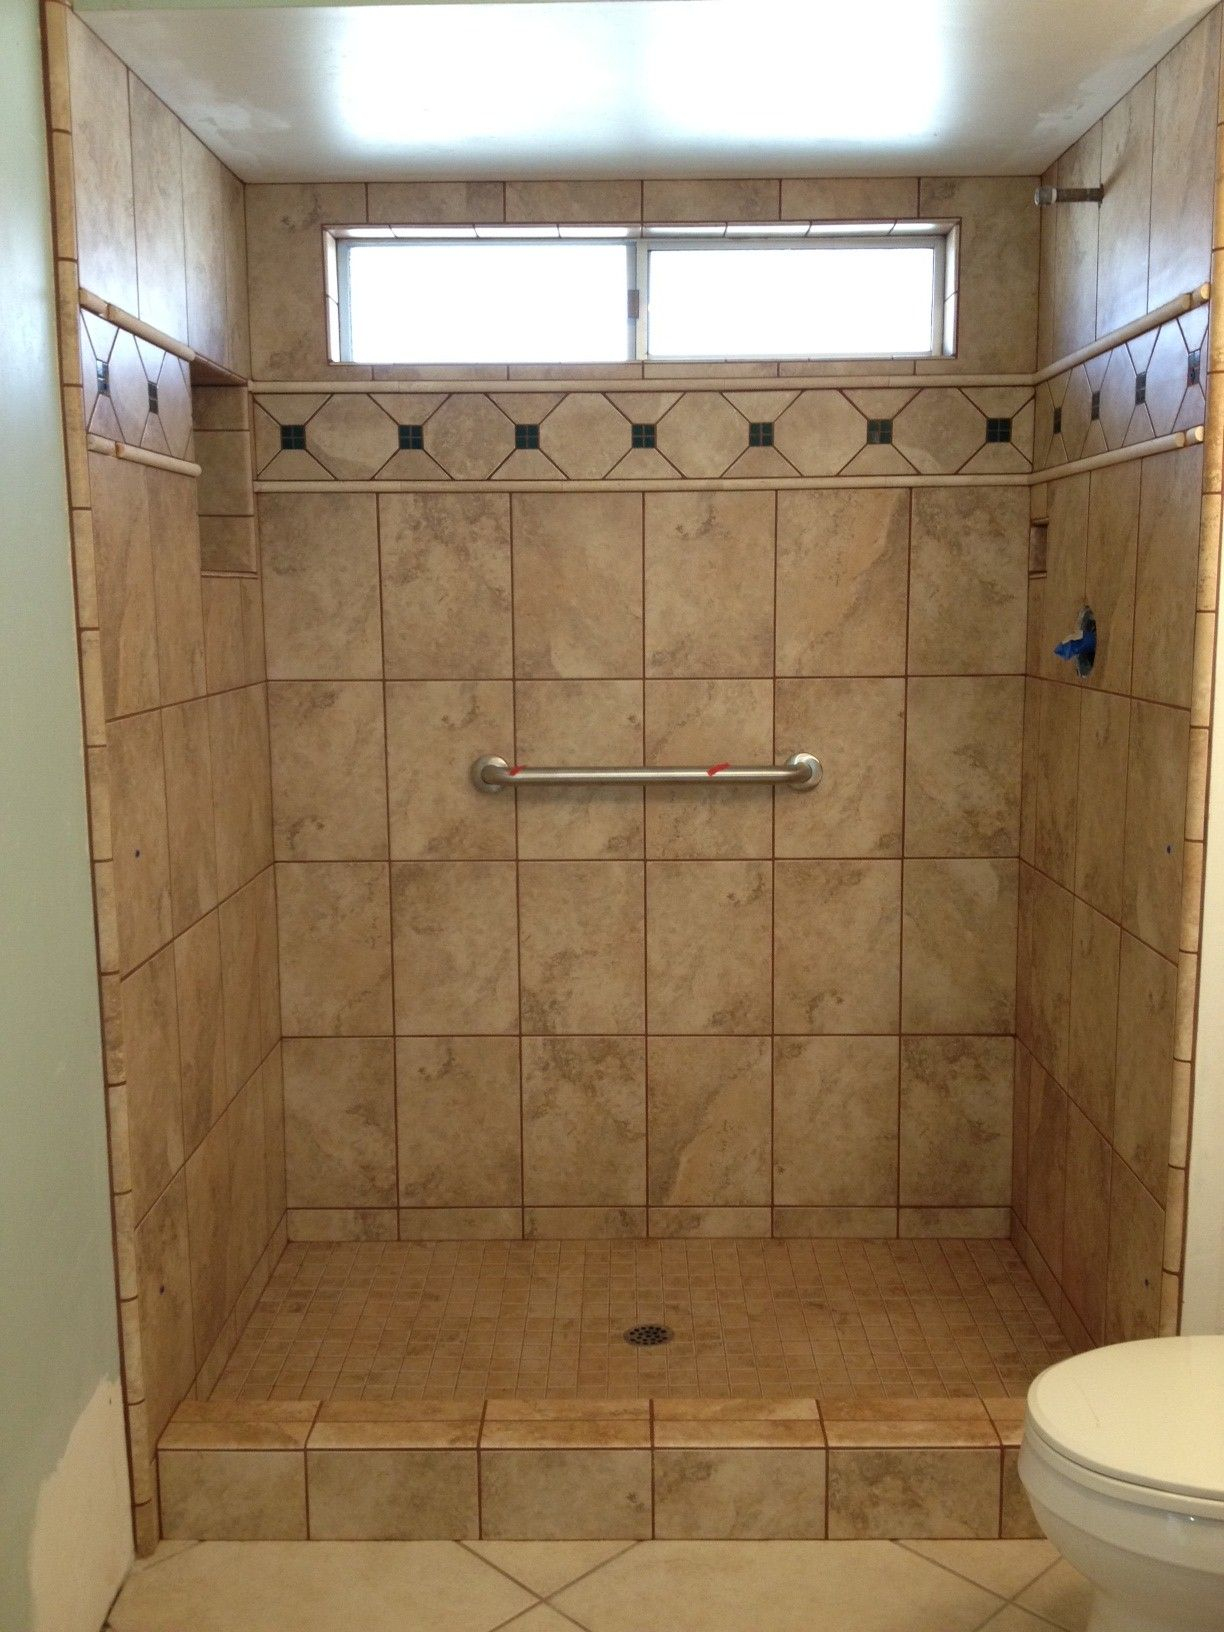 images of bathroom tile ideas photos of tiled shower stalls photos gallery custom 23531